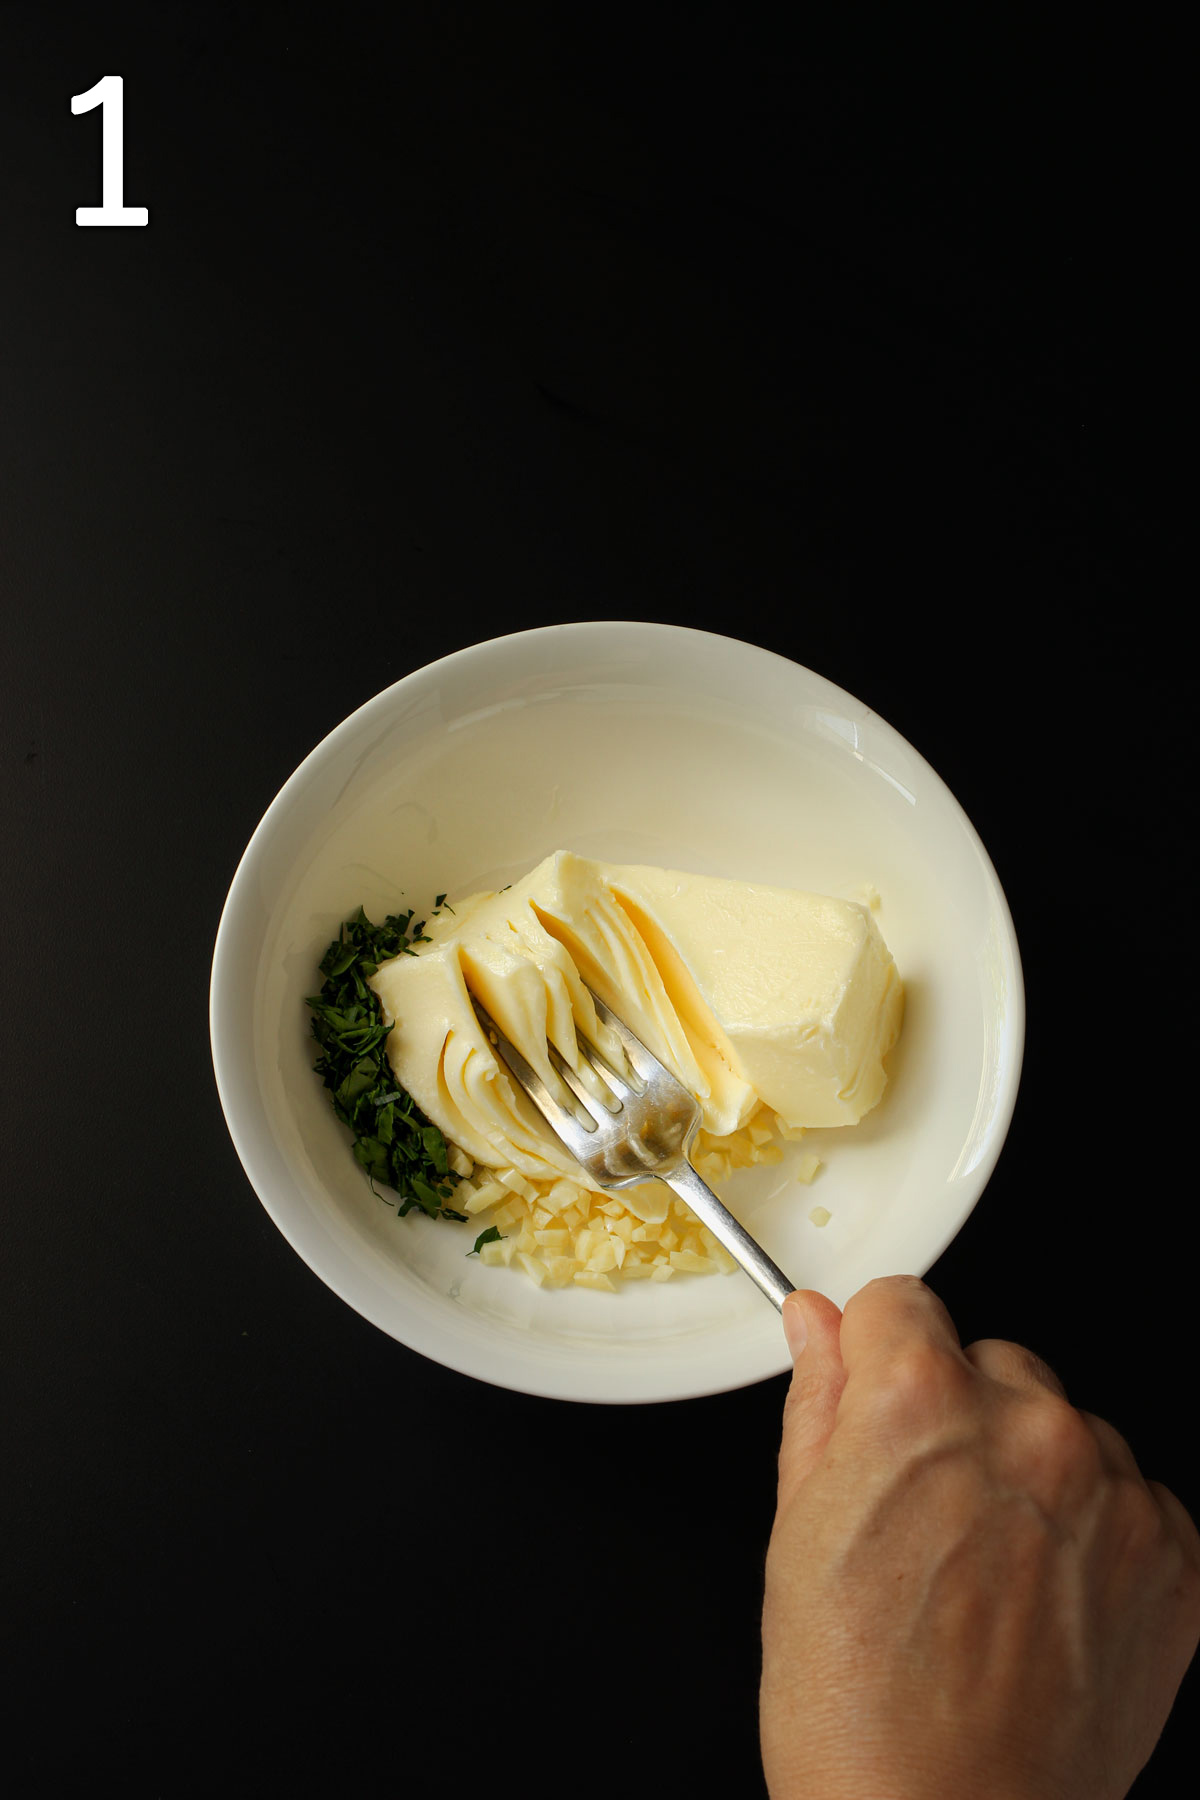 garlic and butter and parsley in a bowl with a hand smashing a fork into it.